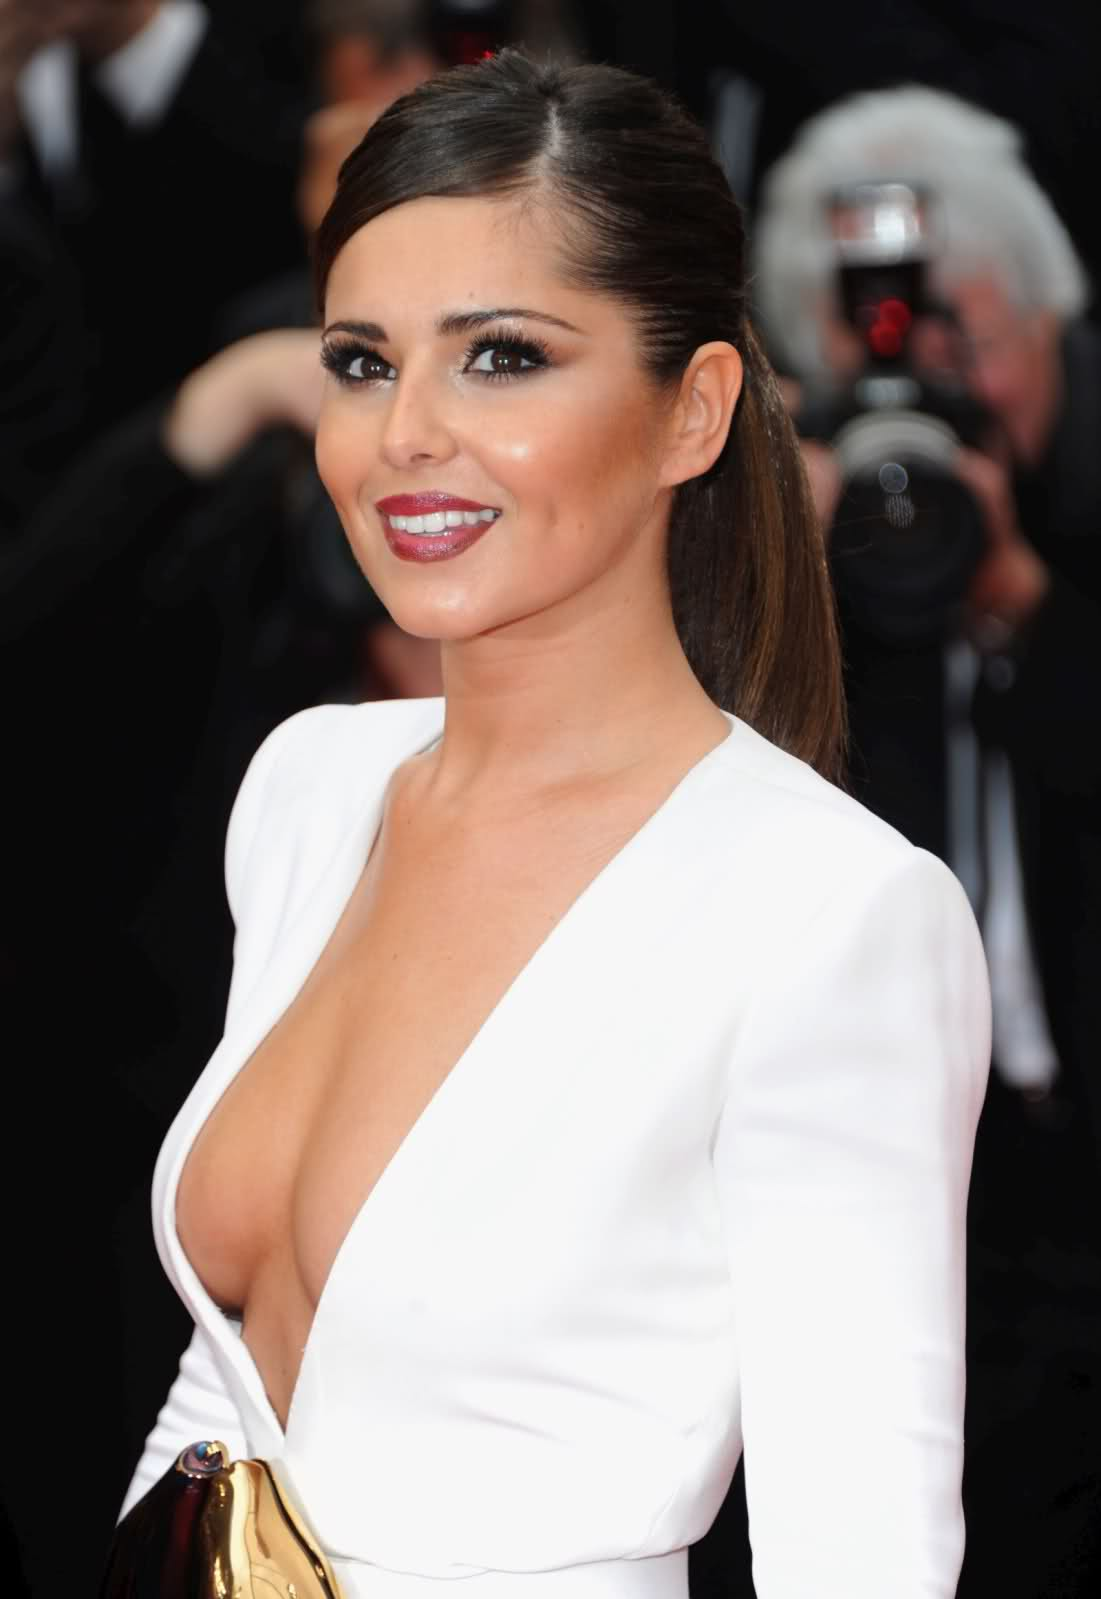 Hollywood All Stars Cheryl Cole Hot Wallpapers In 2012-2197